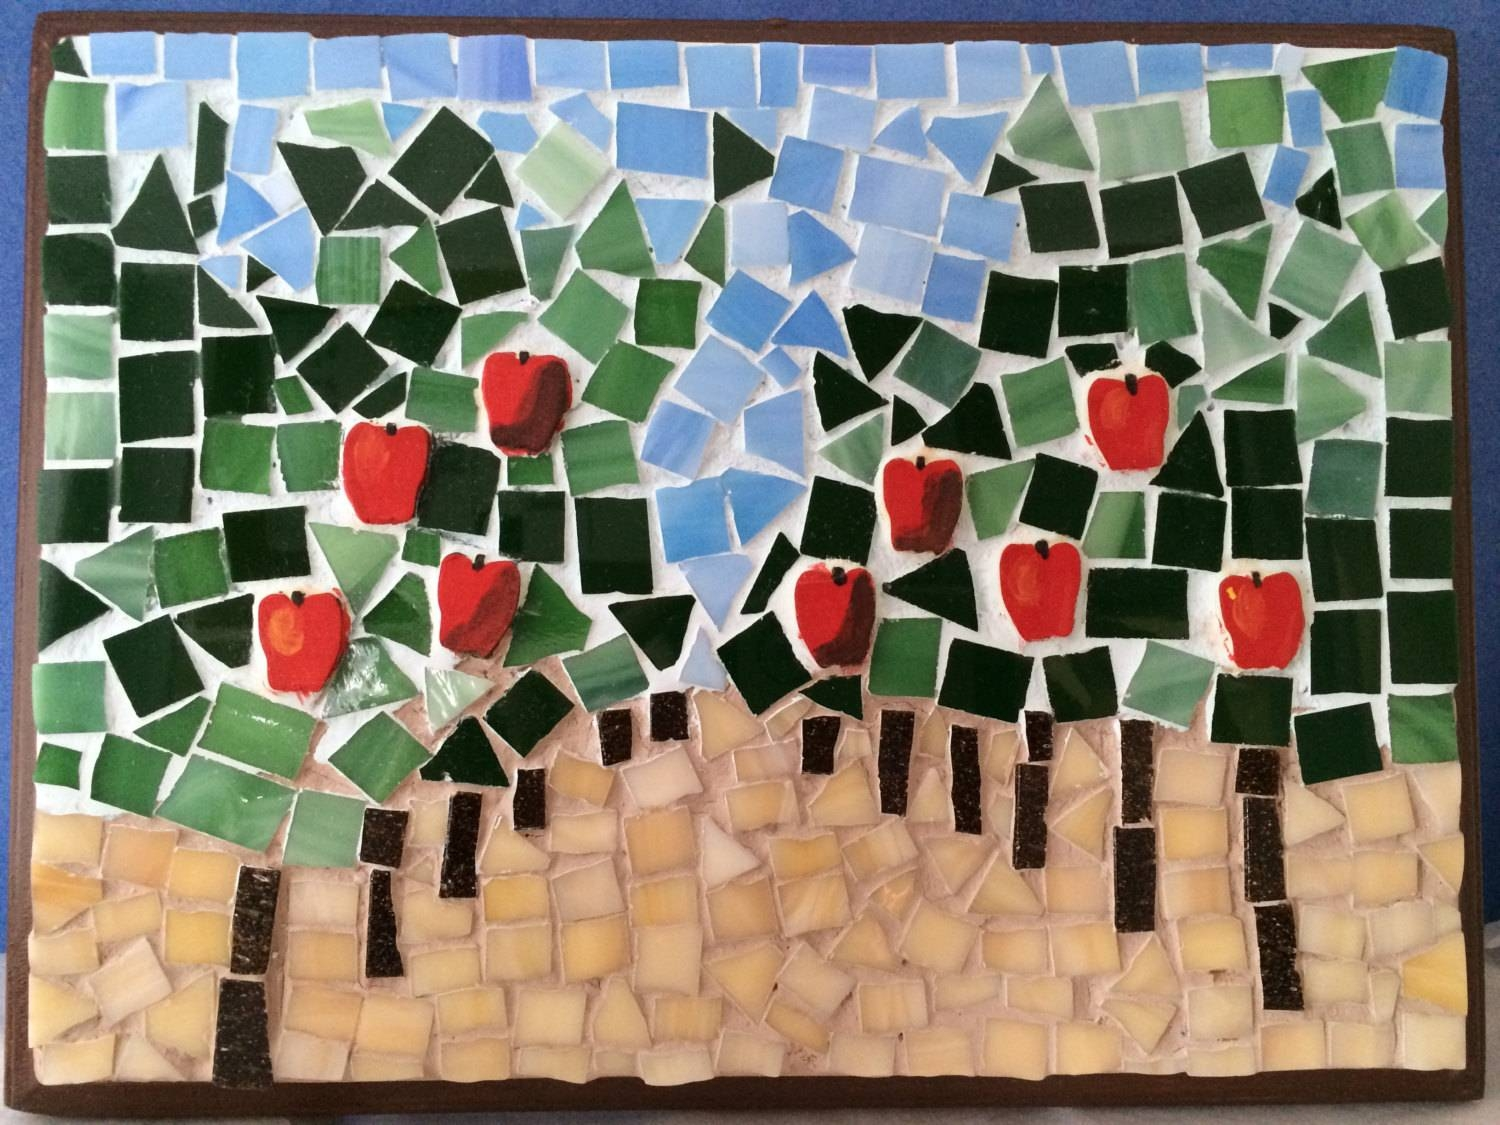 Apple Orchard Diy Mosaic Stress Relieving Unique Gift Wall Within Best And Newest Mosaic Wall Art Kits (View 5 of 20)